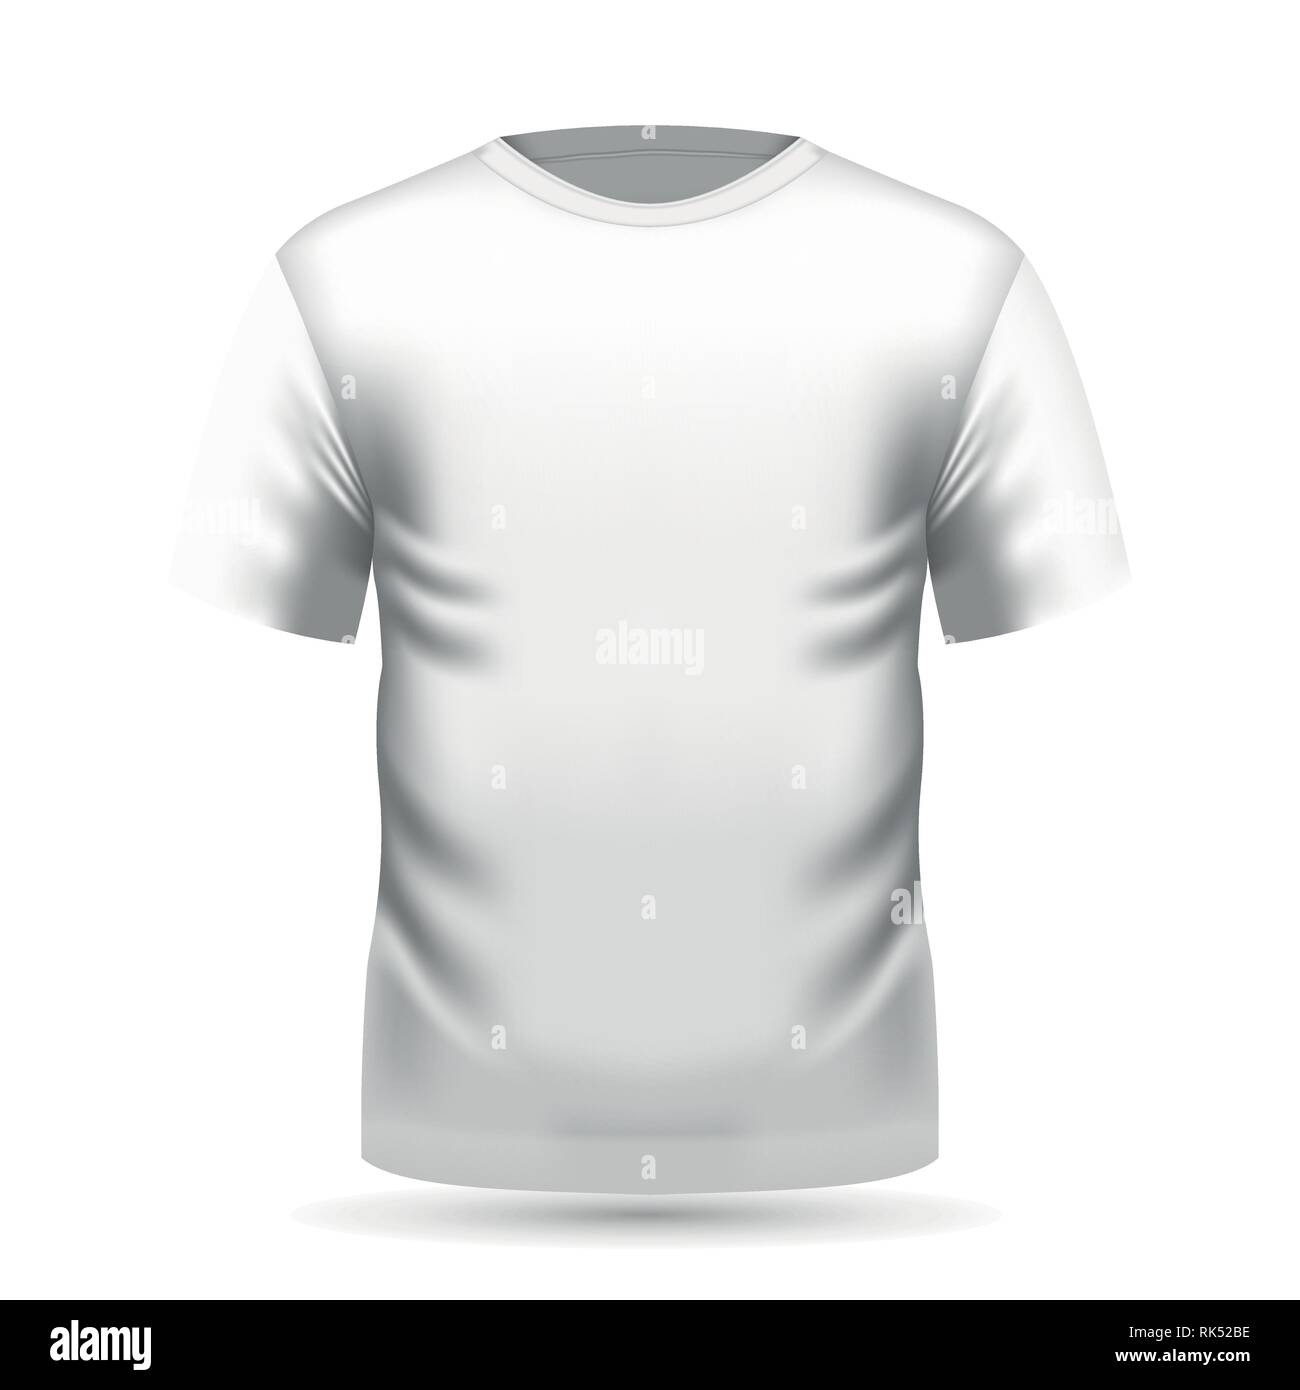 7e18bb65c Mens white t-shirt with short sleeve in front view. Vector illustration,  EPS 10